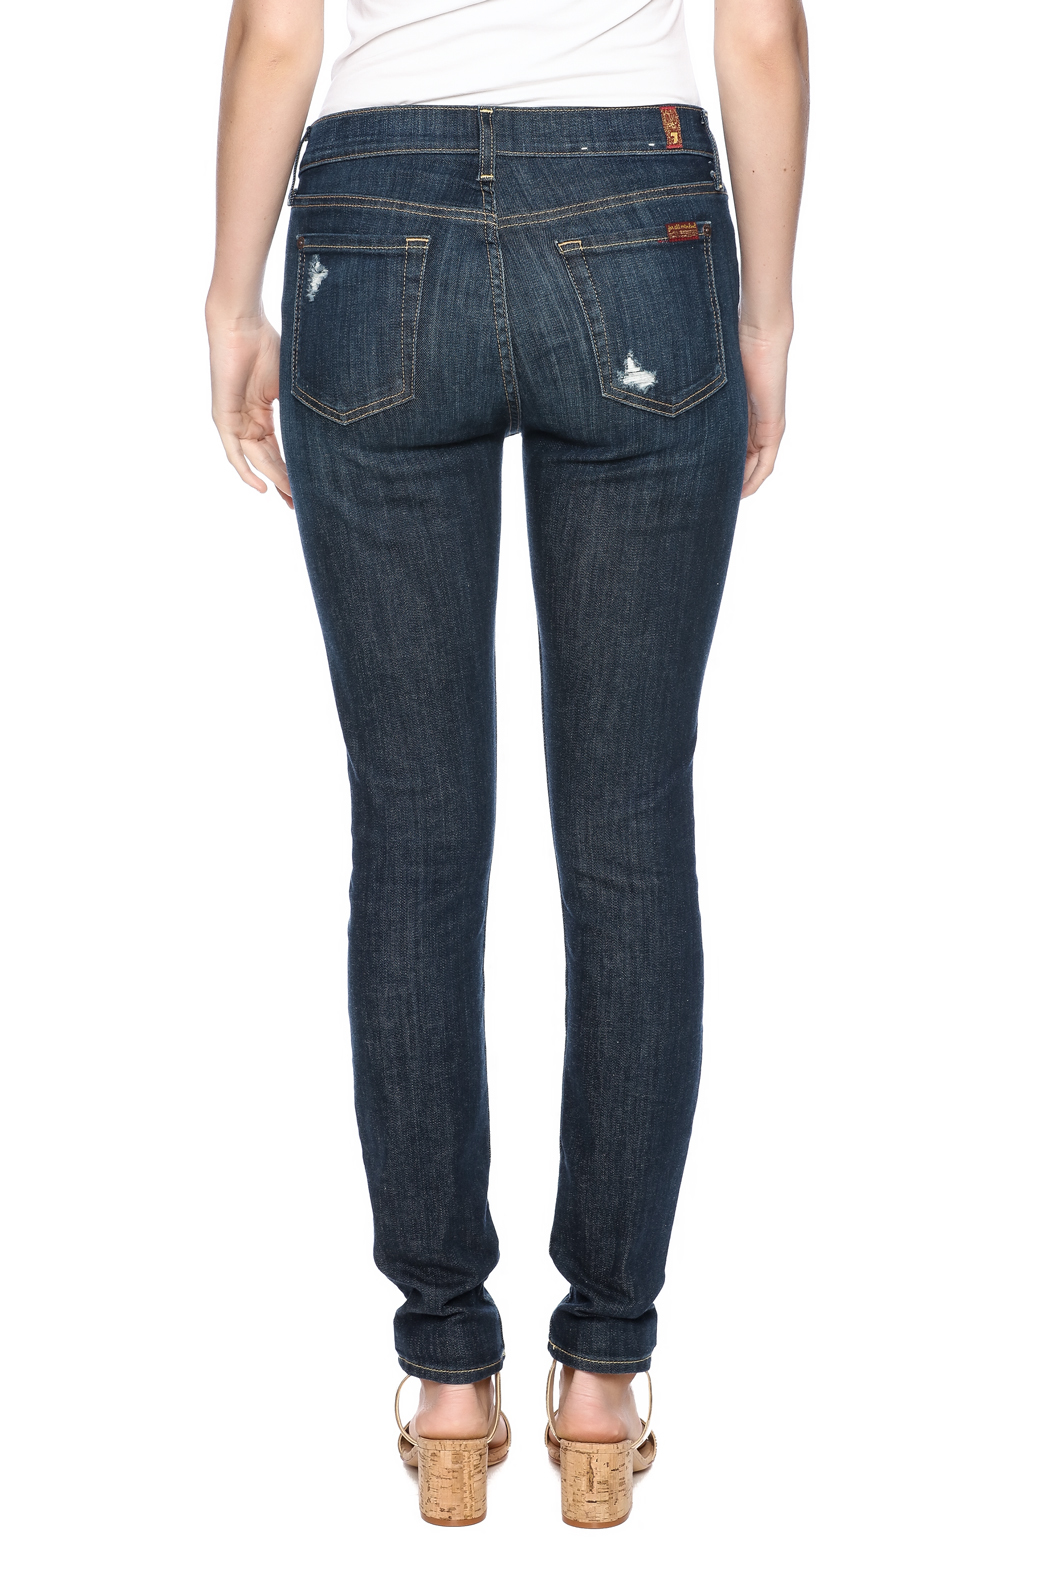 7 For all Mankind The Distressed Skinny - Back Cropped Image